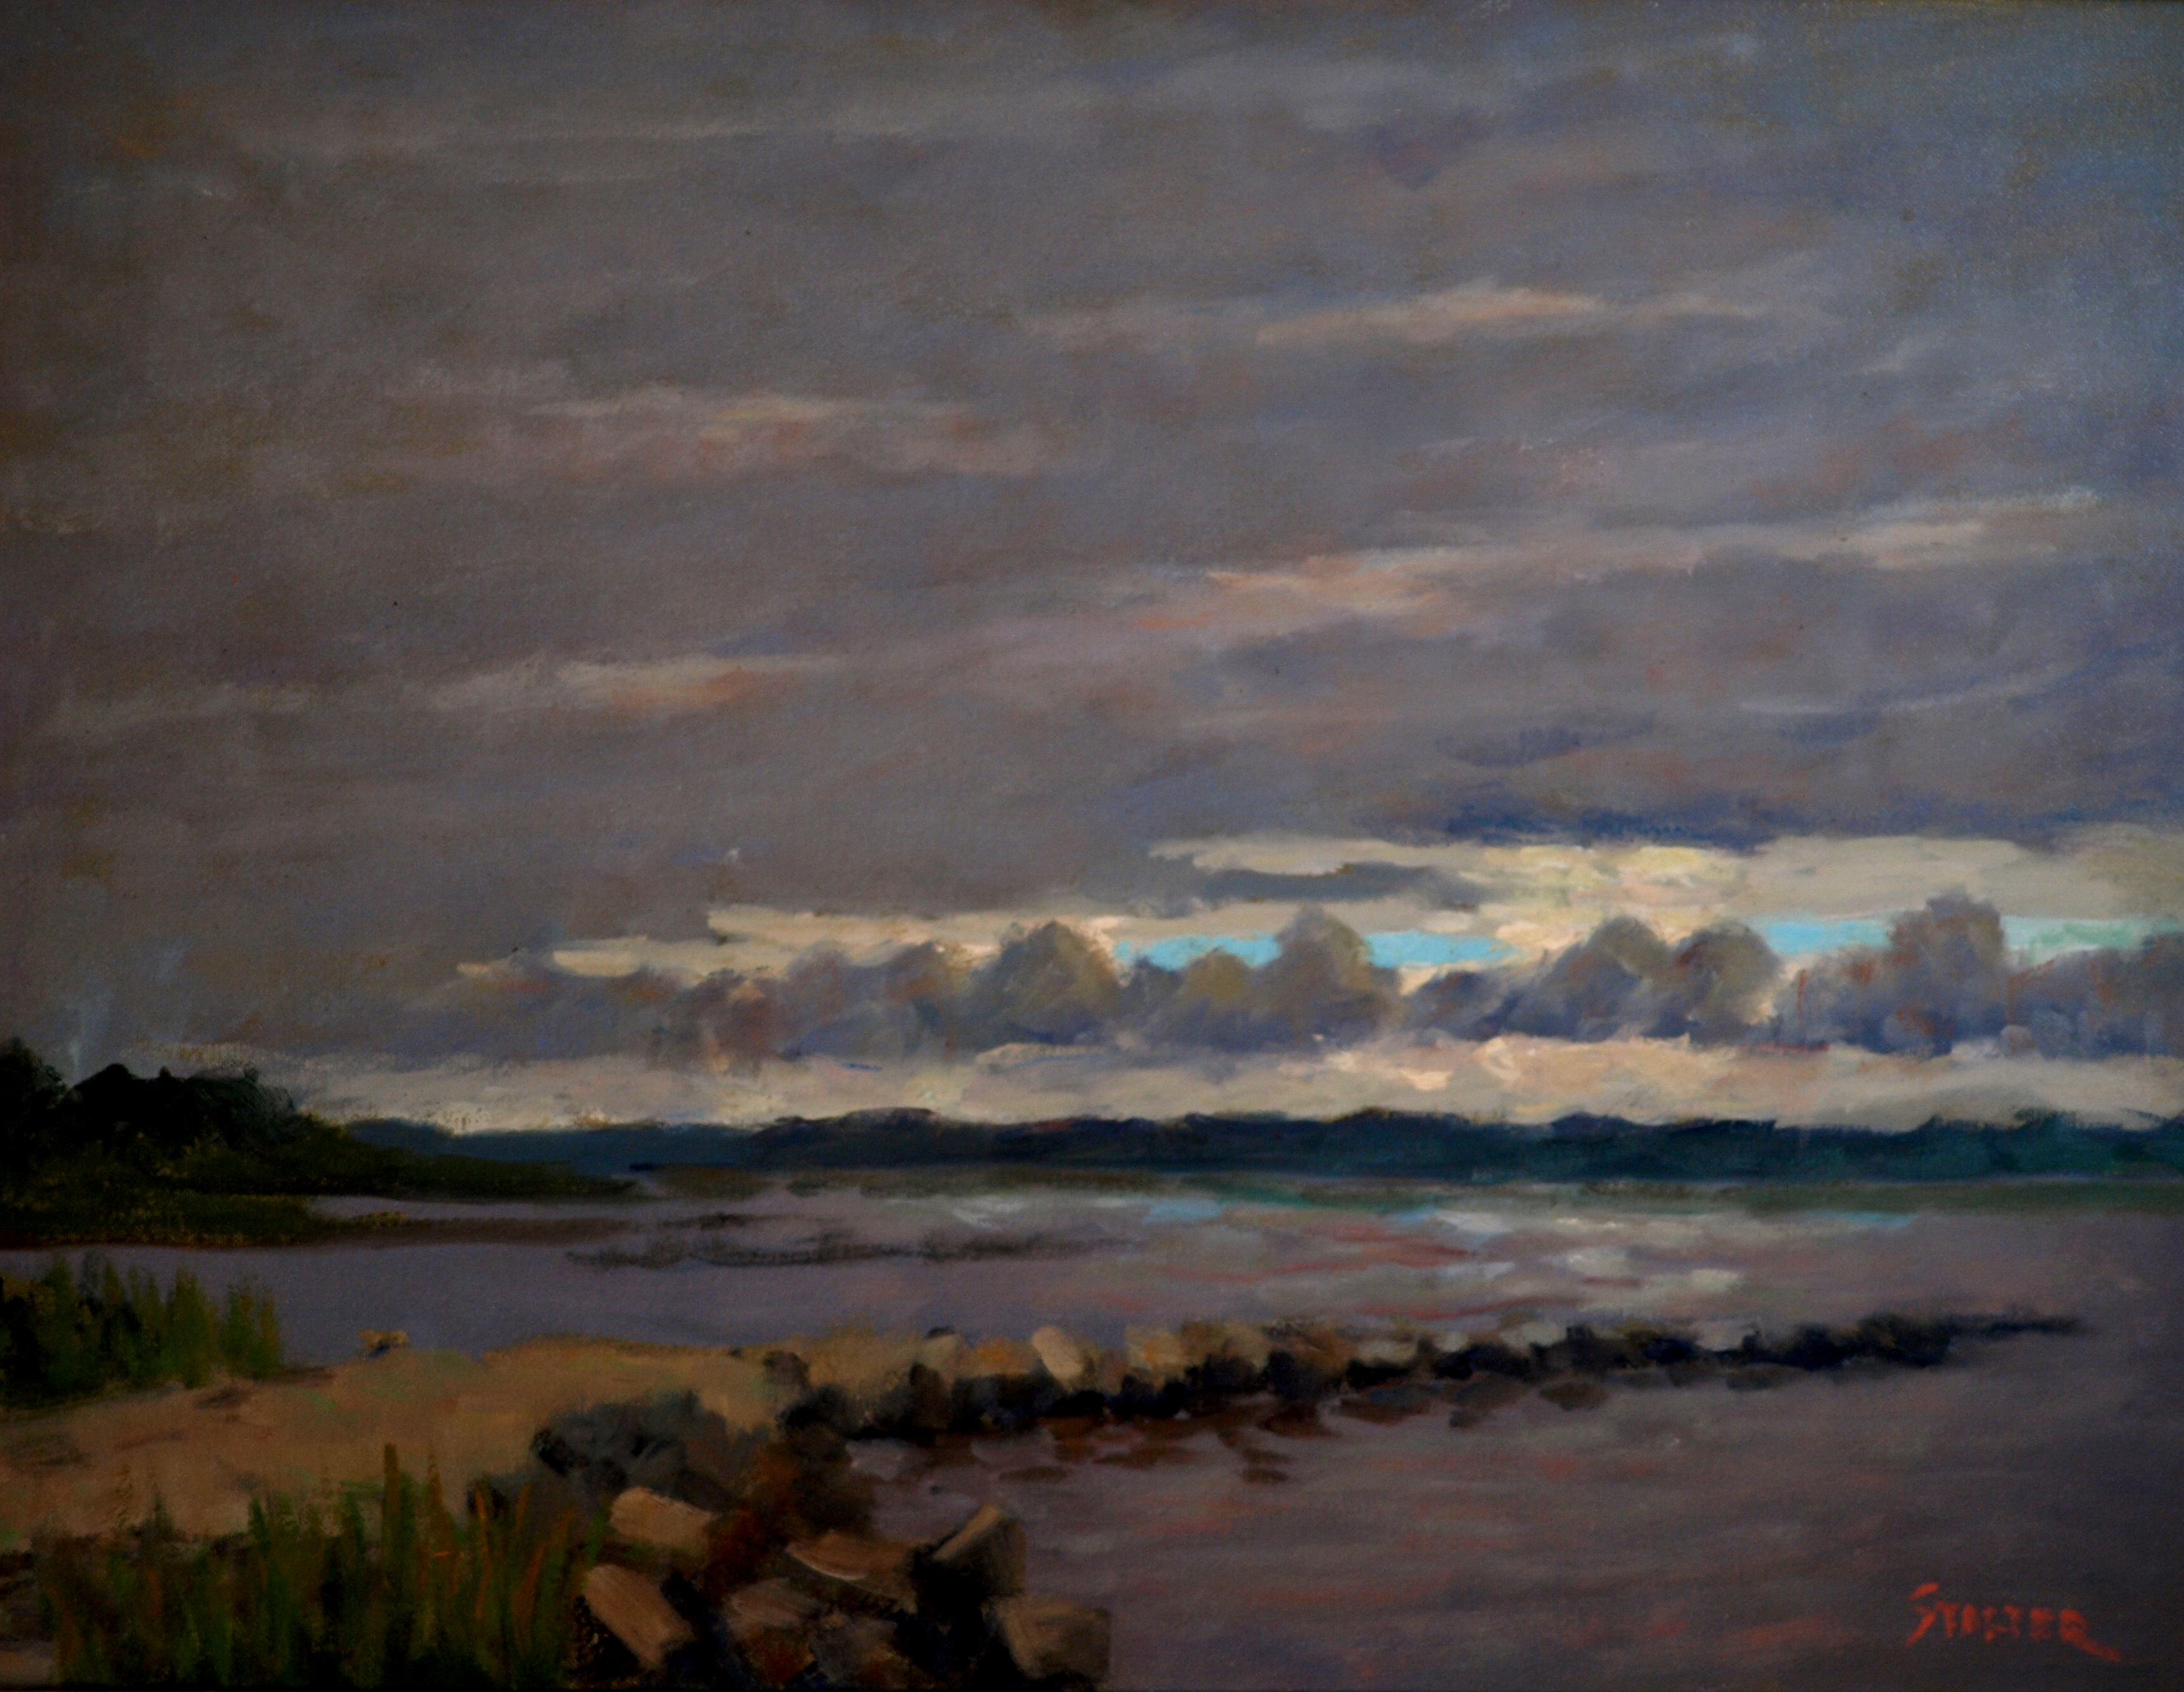 Stormy Morning - Stonington, Oil on Canvas, 20 x 24 Inches, by Richard Stalter, $850